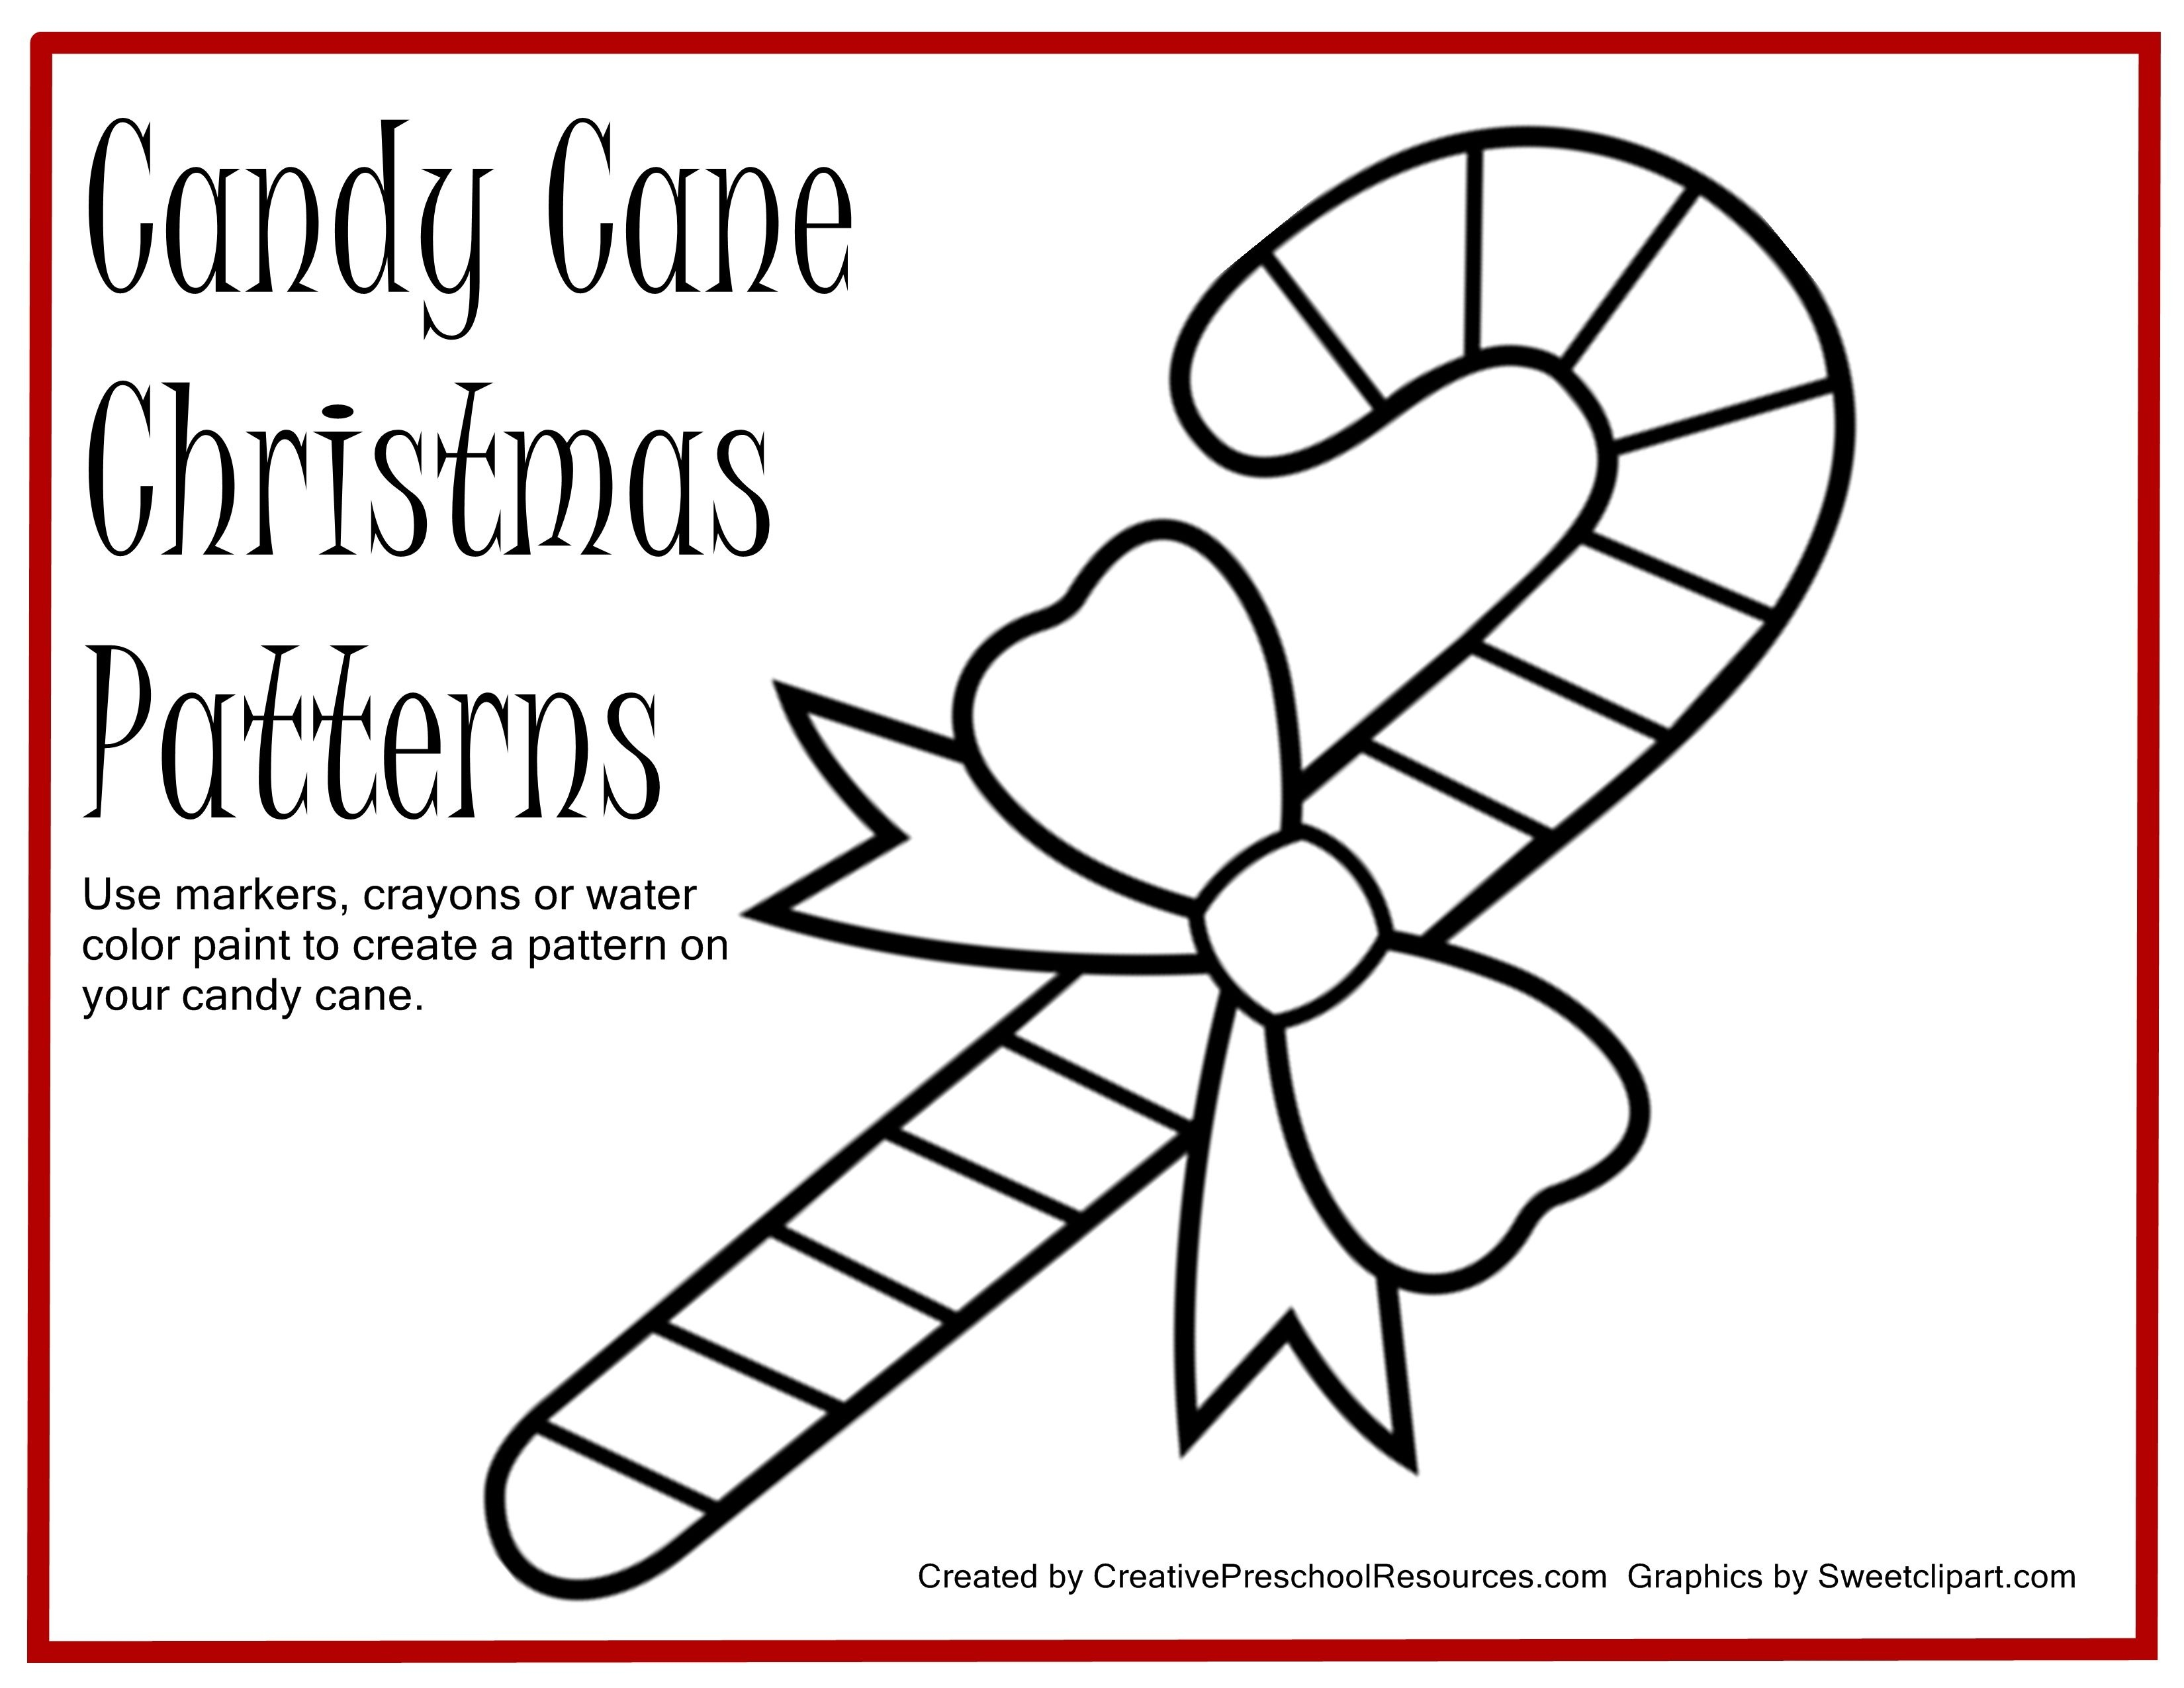 Free Printable For Painting Candy Cane Patterns | Preschool Ideas - Free Candy Cane Template Printable